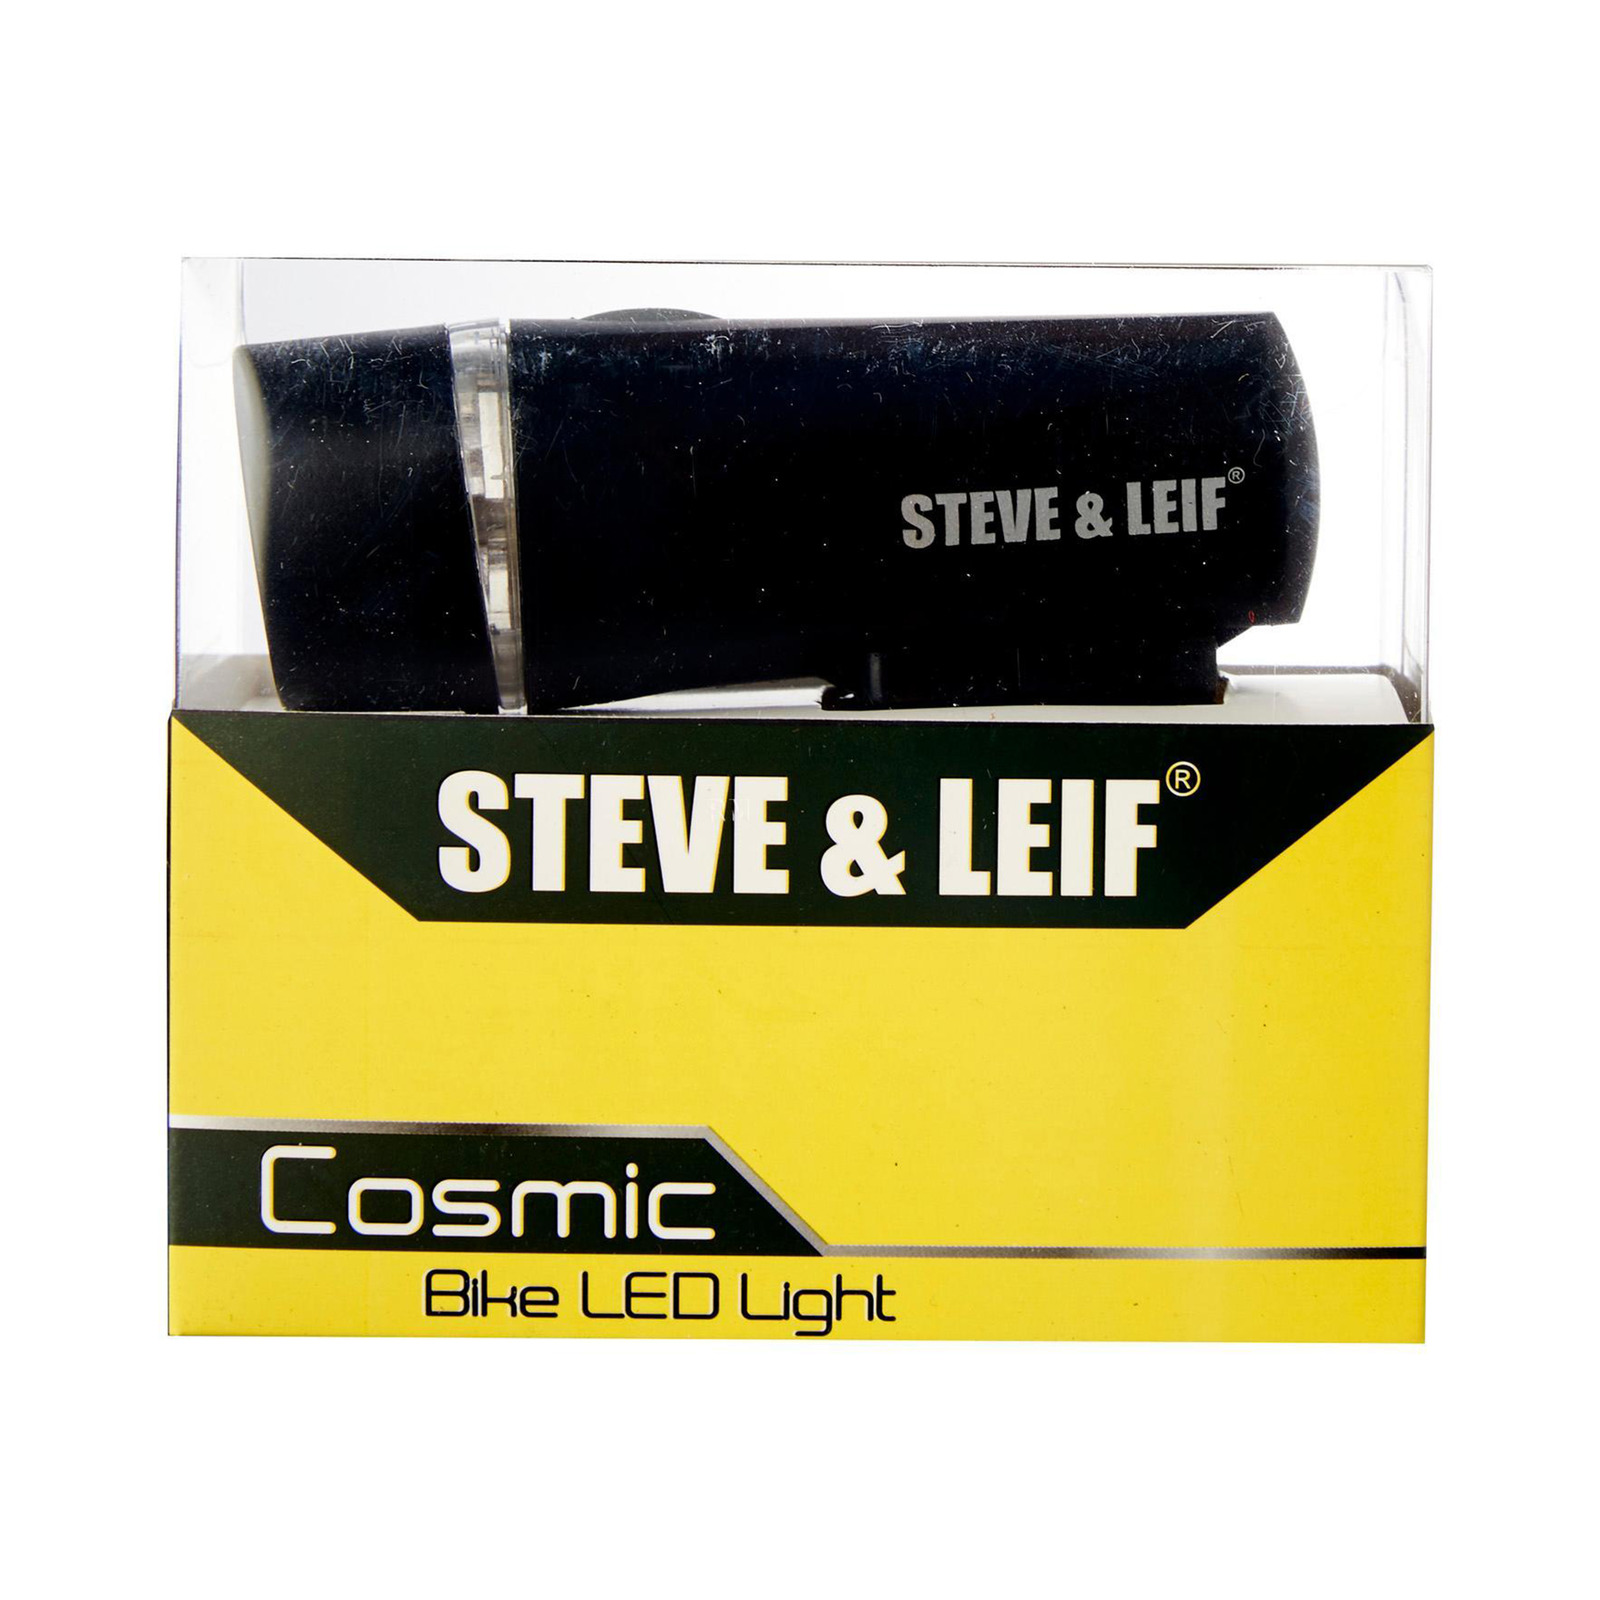 Steve & Leif Cosmic 5 LED White Bicycle Torch